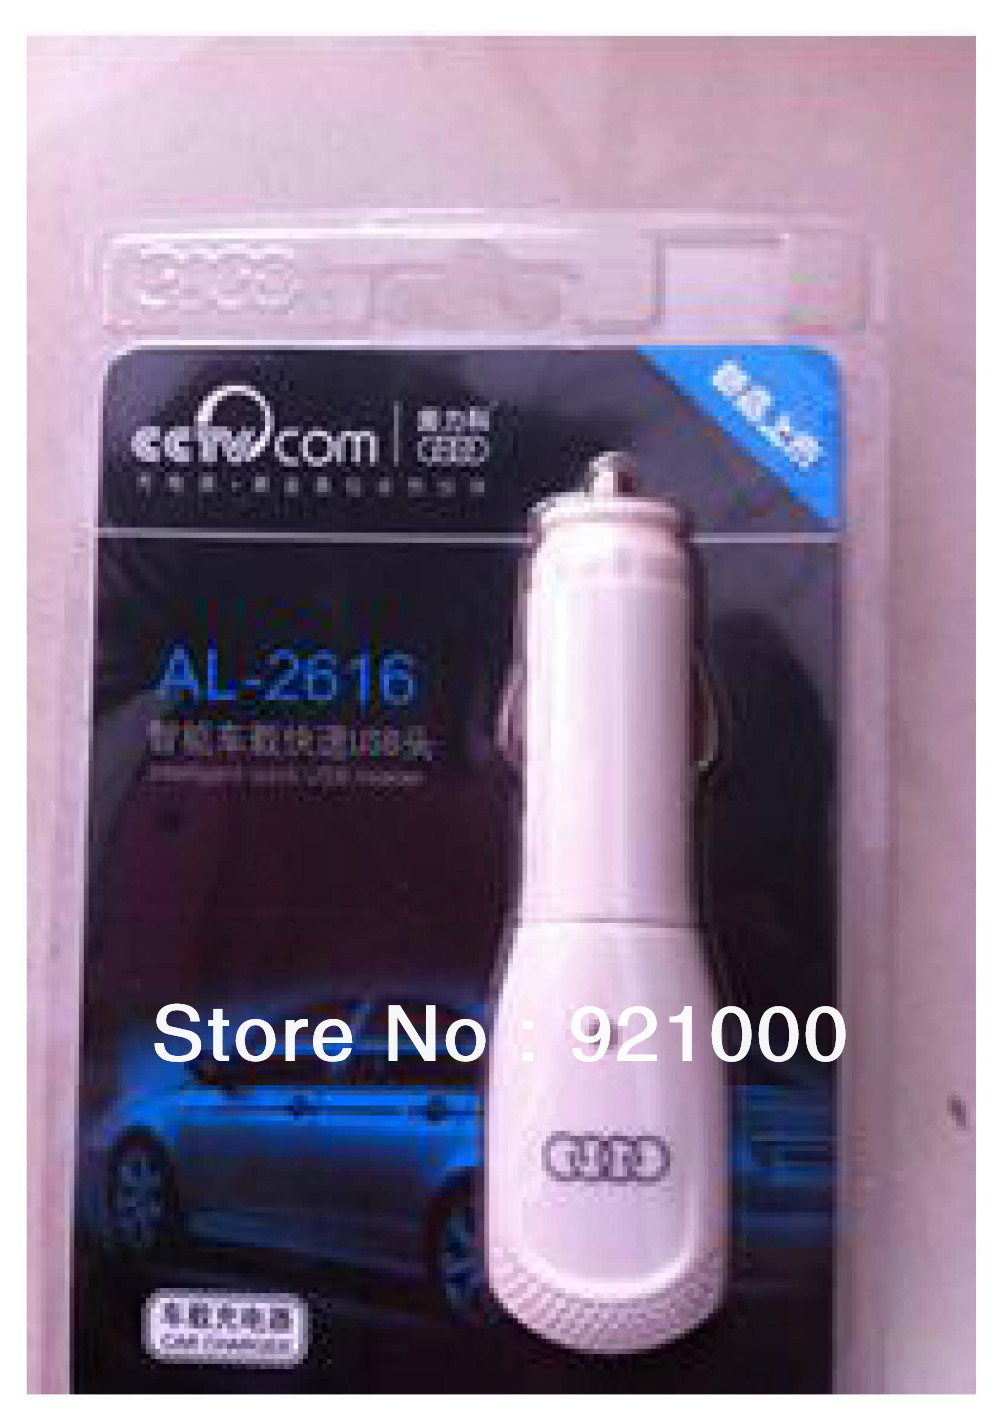 Free Shipping Model LXC00005 Multiple USB Car Charger Adapter for Cell Phone iphone 4 4S 5 iPad iPod MP3 MP4 with package(China (Mainland))